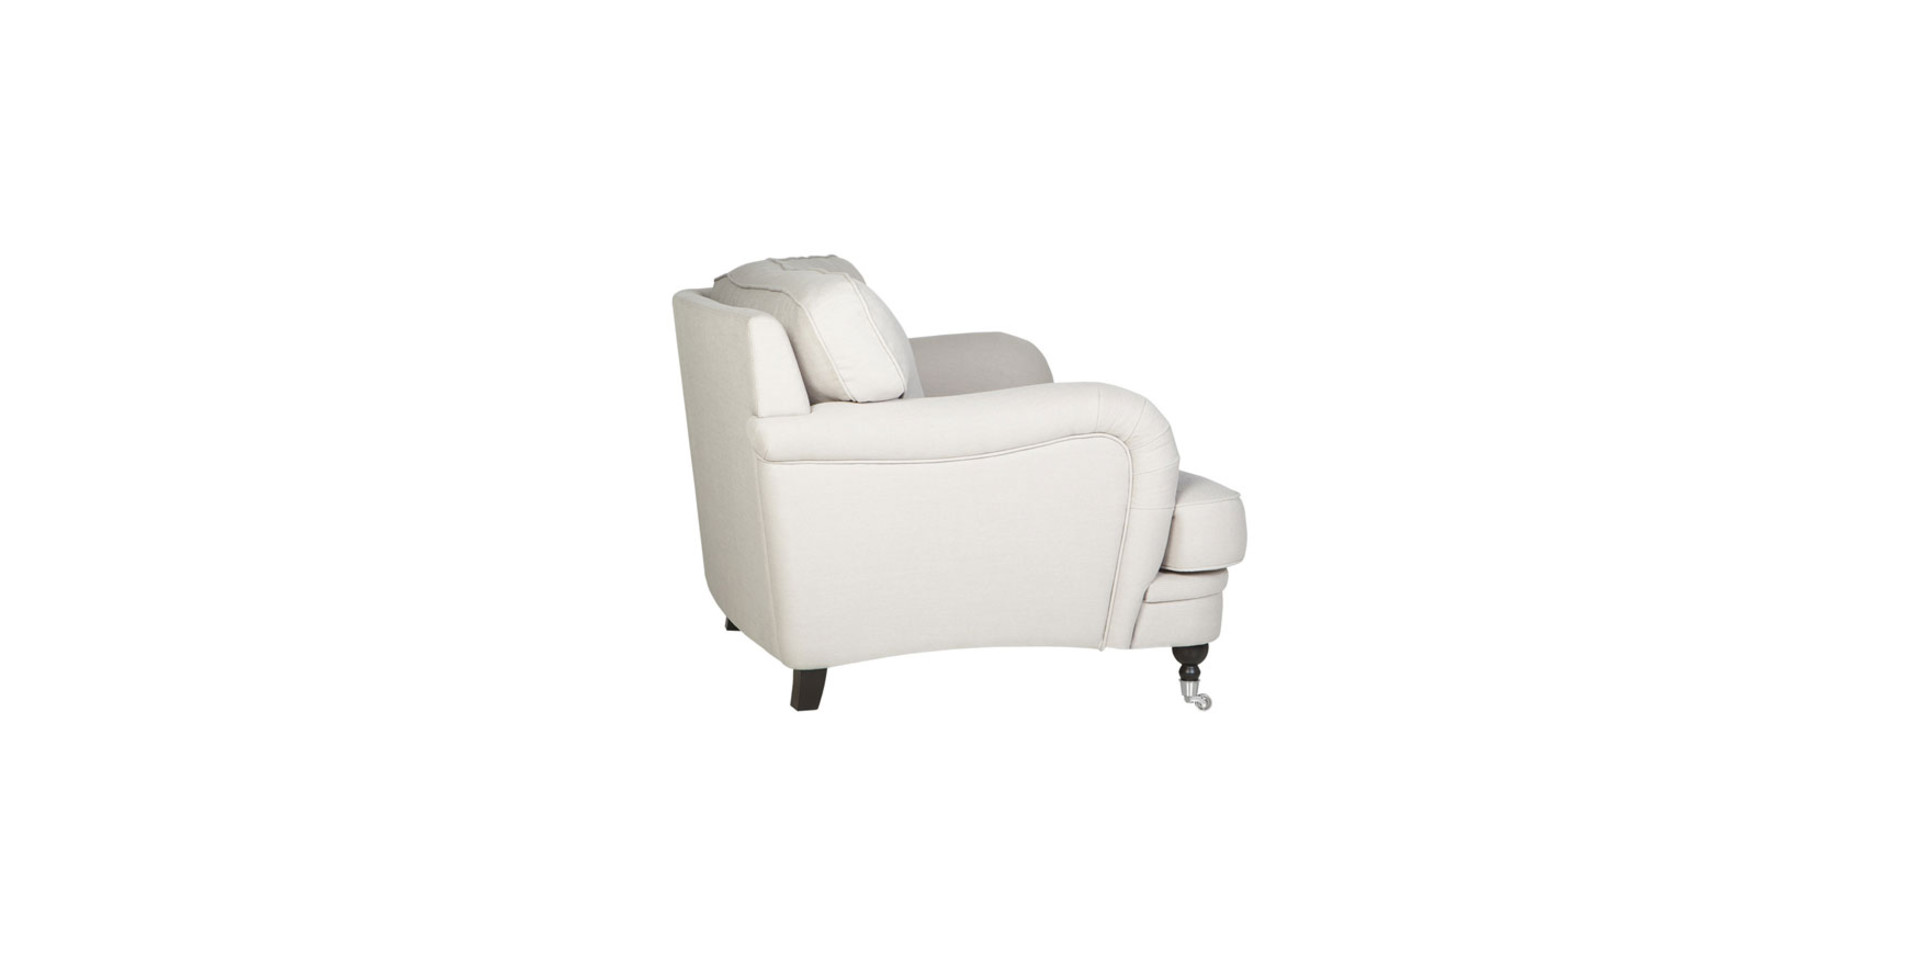 sits-olle-canape-35seater_nilo31_light_grey_3